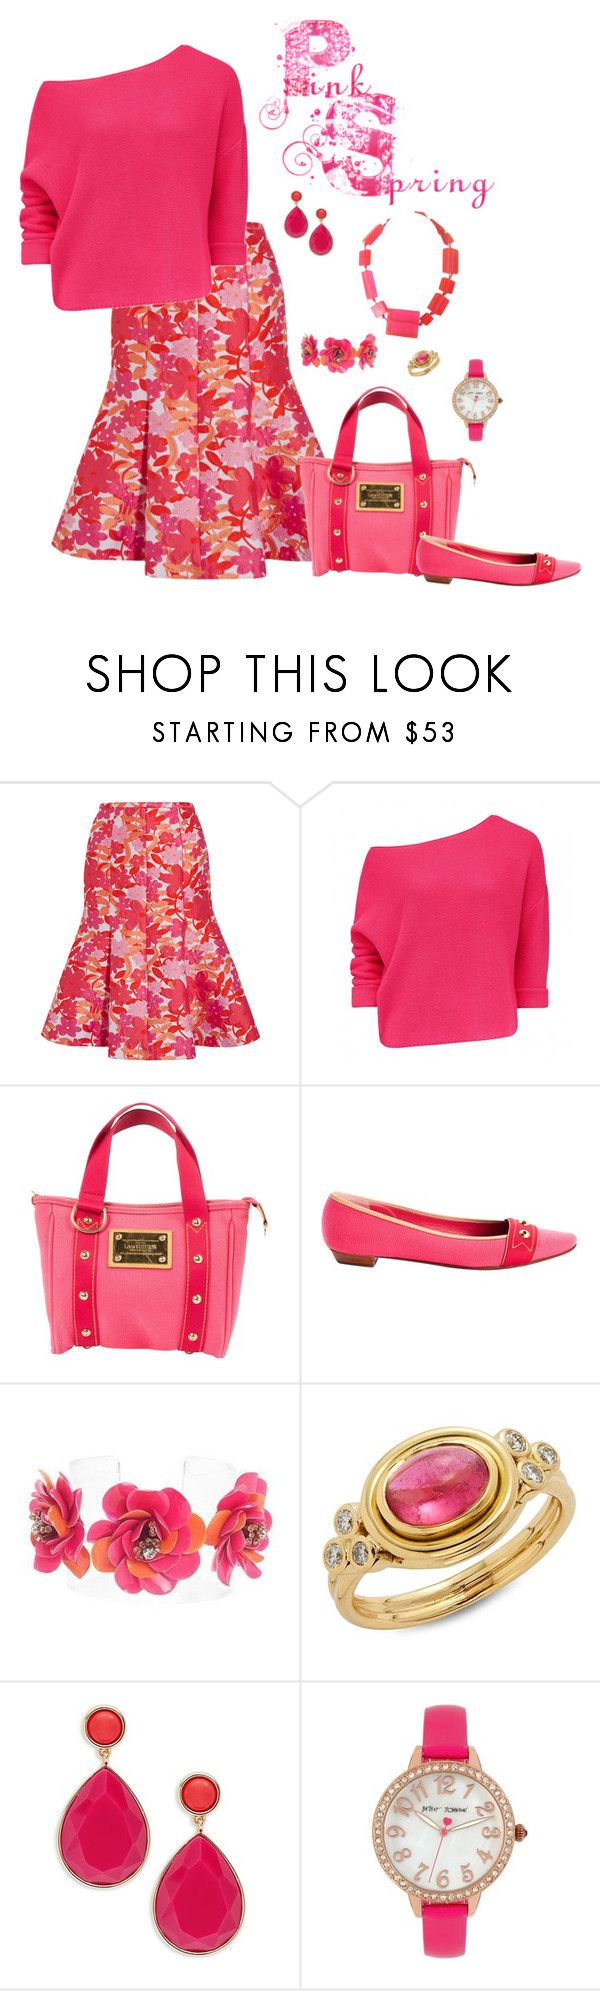 """""""Pink Spring"""" by lwilkinson ❤ liked on Polyvore featuring Michael Kors, Louis Vuitton, Forest of Chintz, Temple St. Clair, Trina Turk, Betsey Johnson and Ugo Correani"""